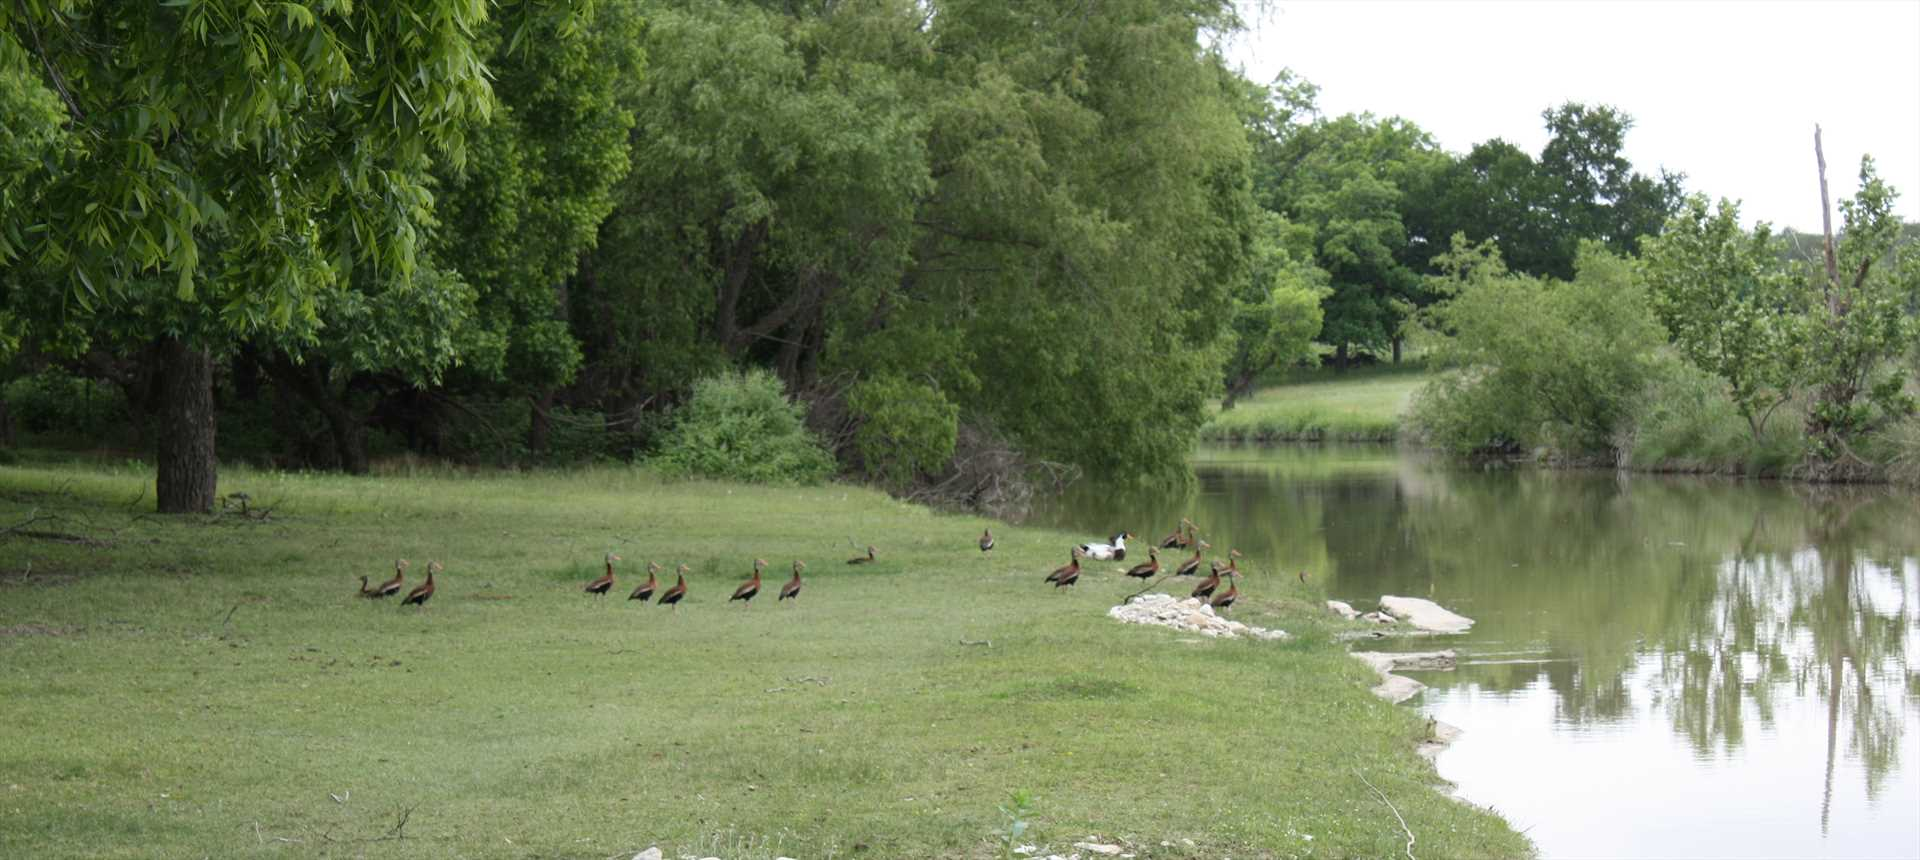 There are 42 scenic acres on the ranch, and you're welcome to stroll the grounds. There's tons of wildlife here!